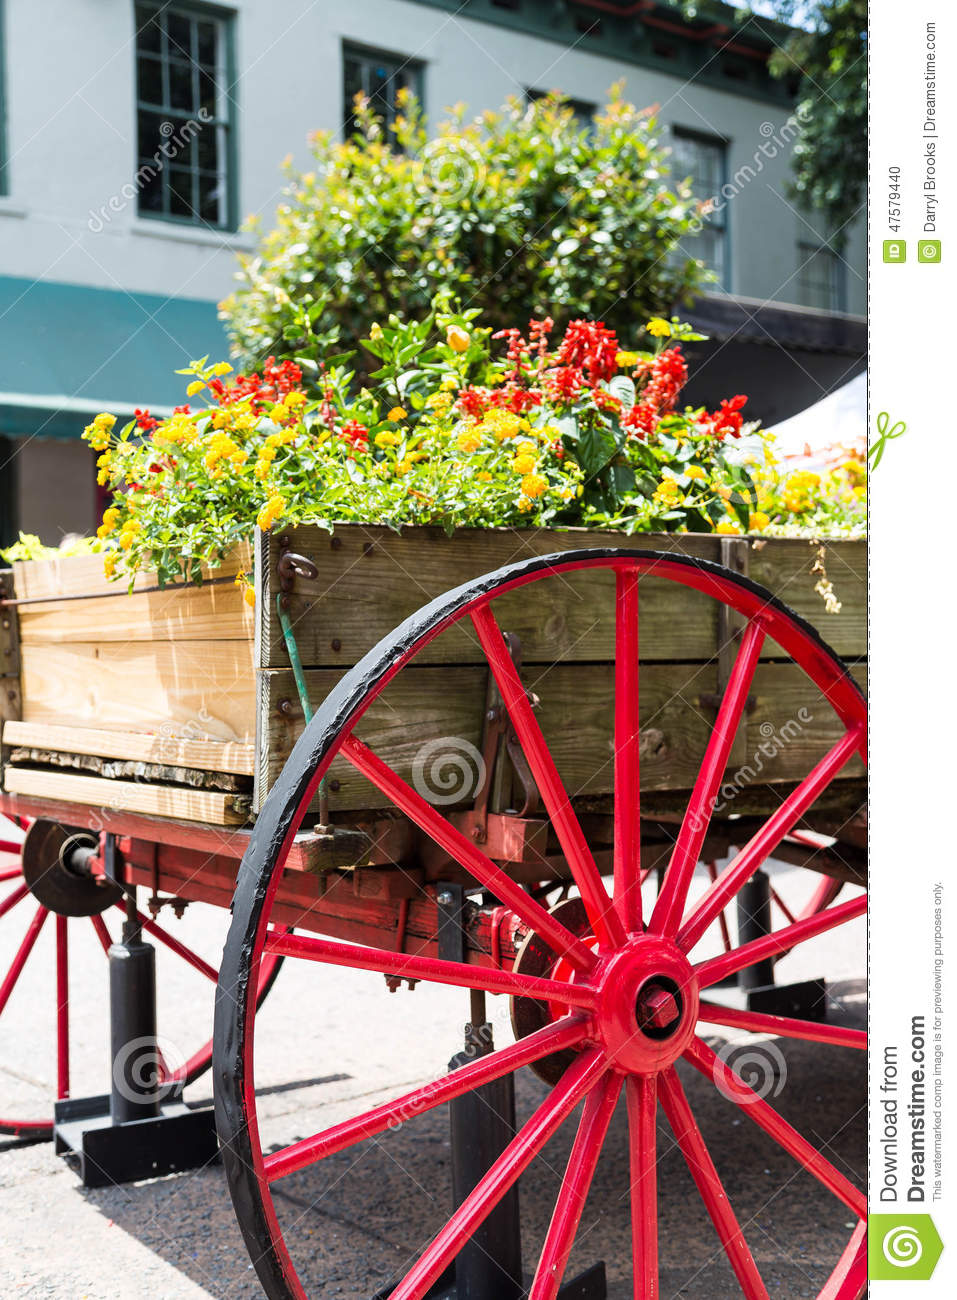 An old wood cart with large red wagon wheel used as a garden planter